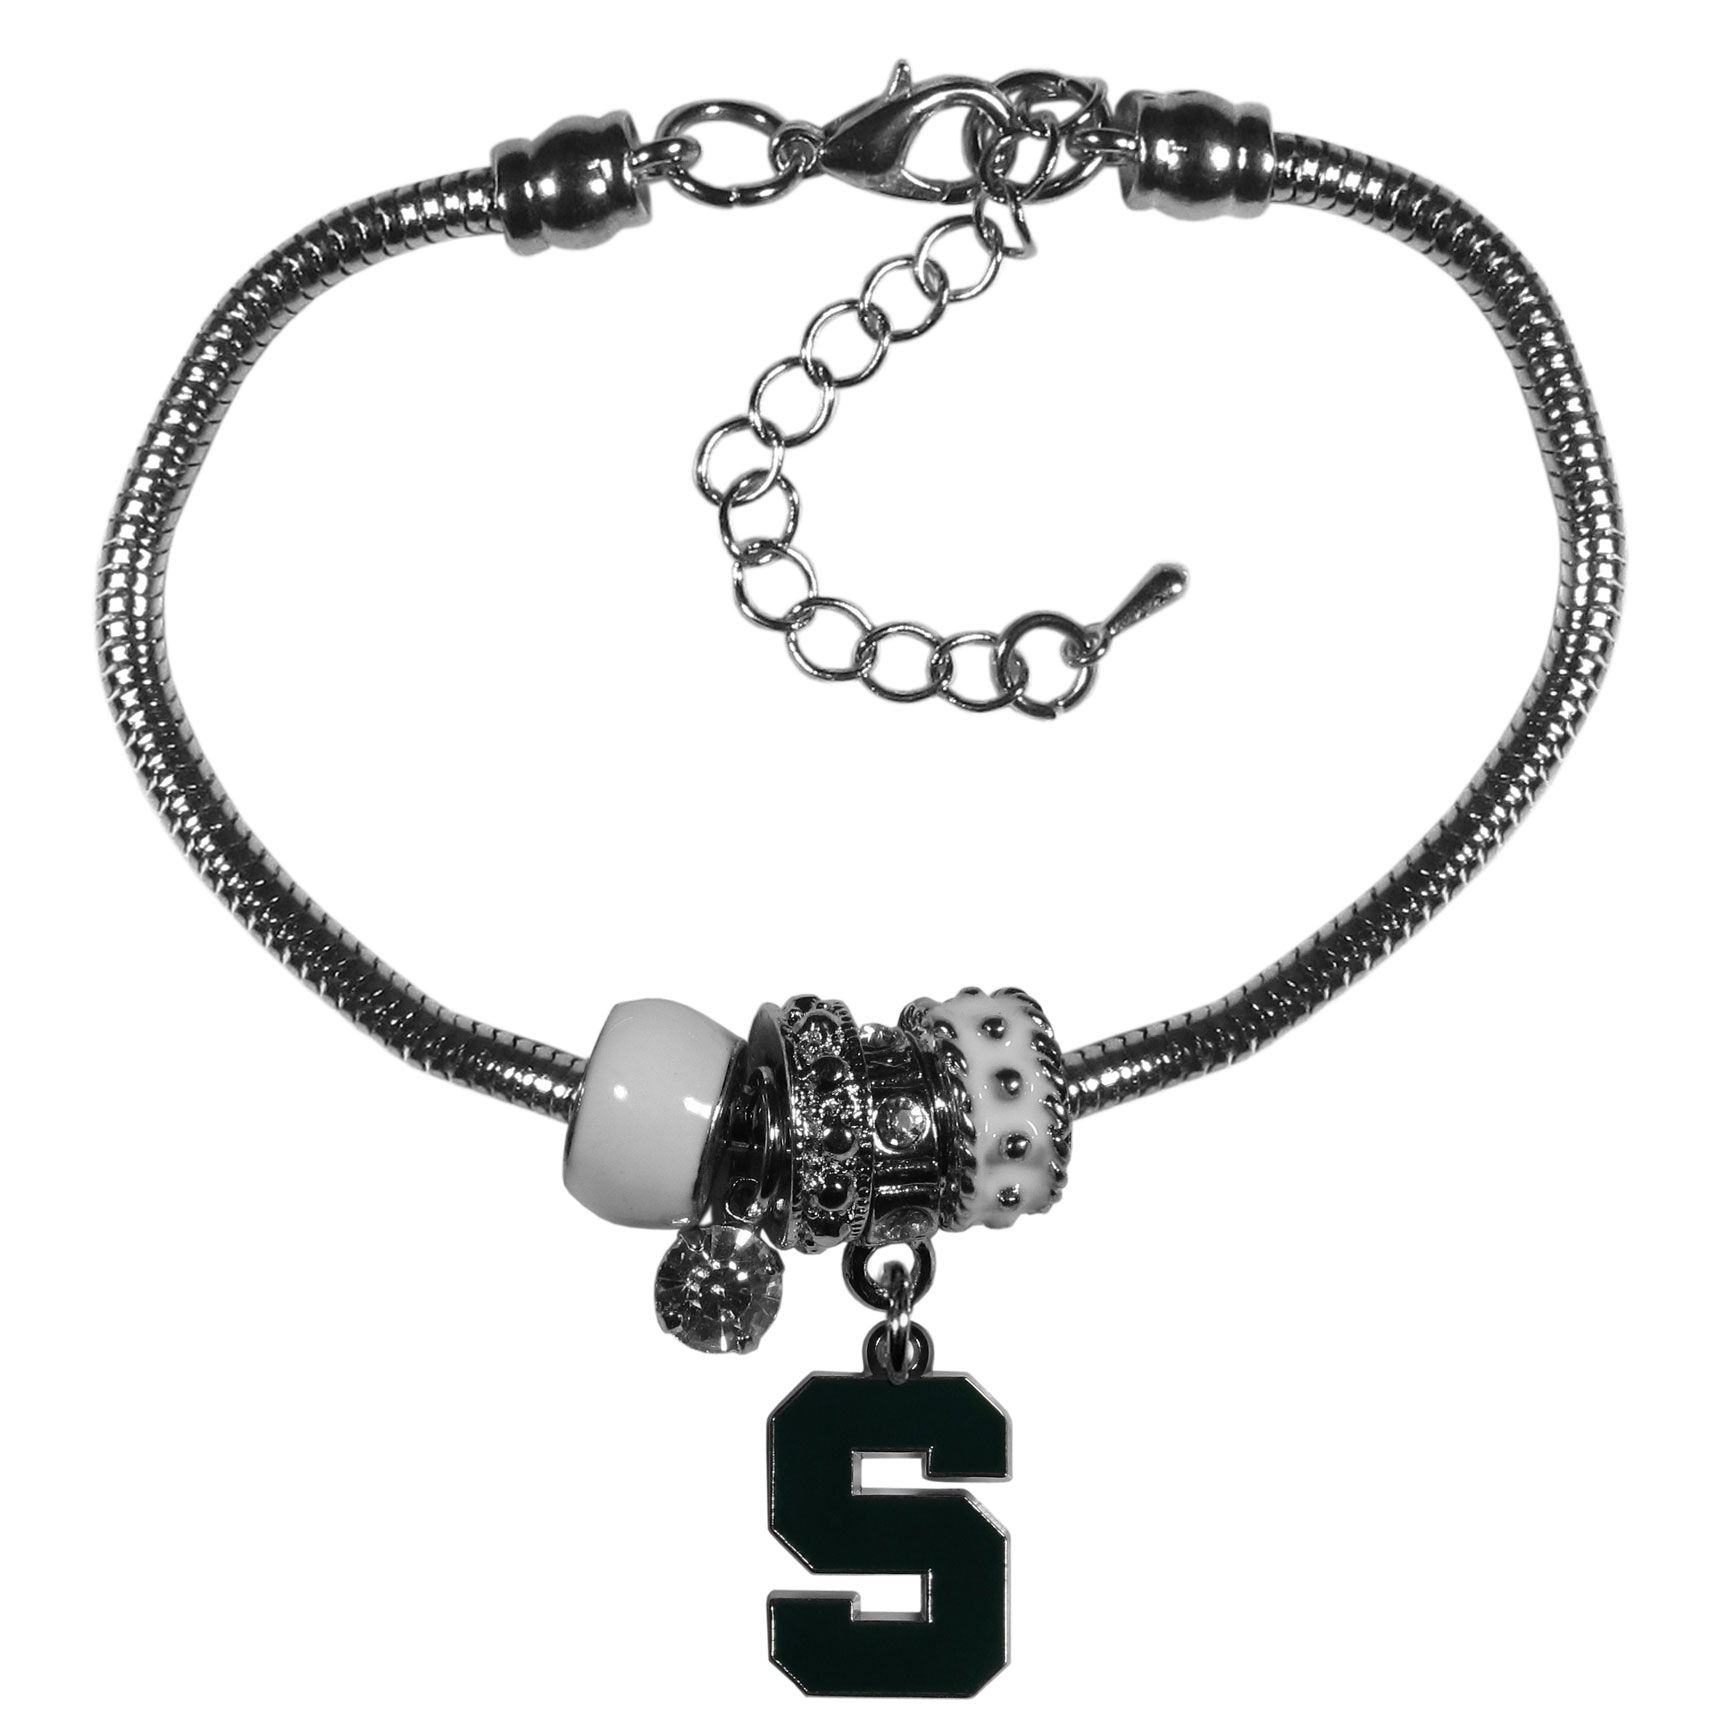 Michigan St. Spartans Euro Bead Bracelet - We have combined the wildly popular Euro style beads with your favorite team to create our  Michigan St. Spartans bead bracelet. The 7.5 inch snake chain with 2 inch extender features 4 Euro beads with enameled team colors and rhinestone accents with a high polish, nickel free charm and rhinestone charm. Perfect way to show off your team pride.